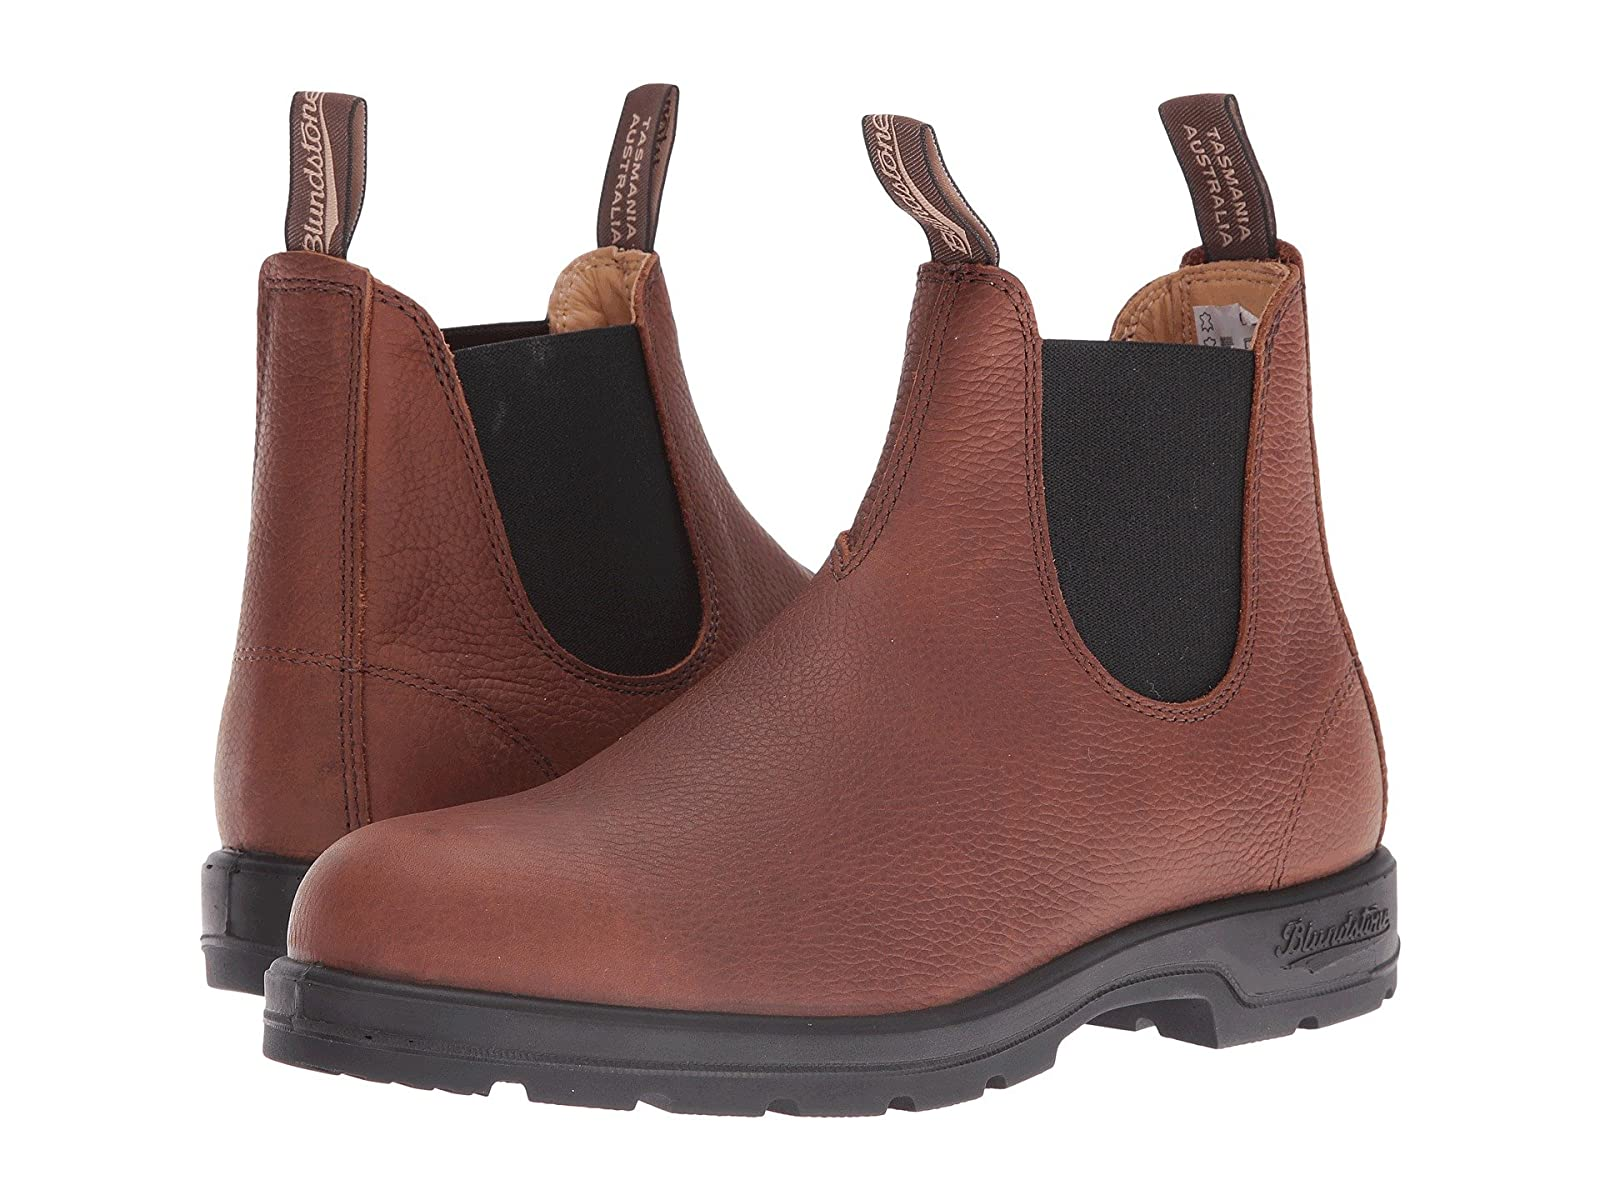 Blundstone 1445Selling fashionable and eye-catching shoes